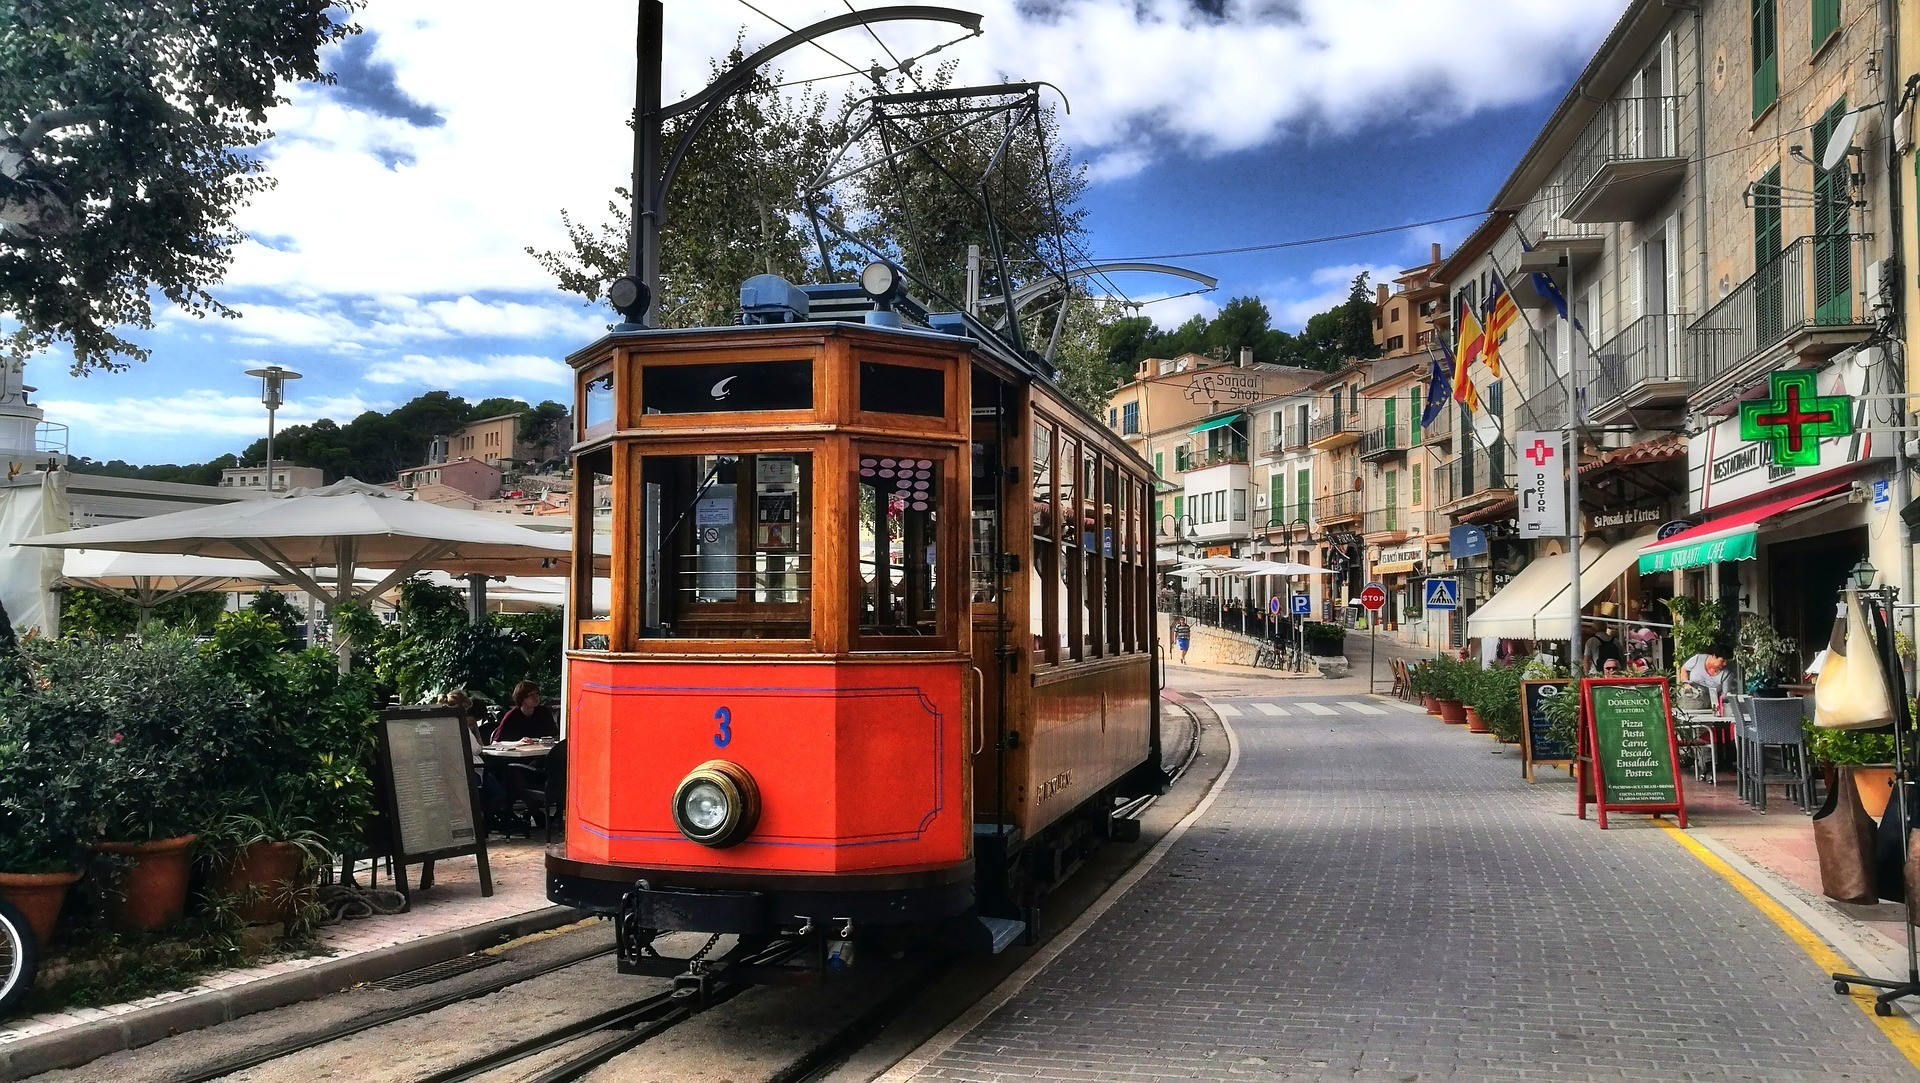 Old tram in Port de Soller Mallorca Photo Christian B on Pixabay